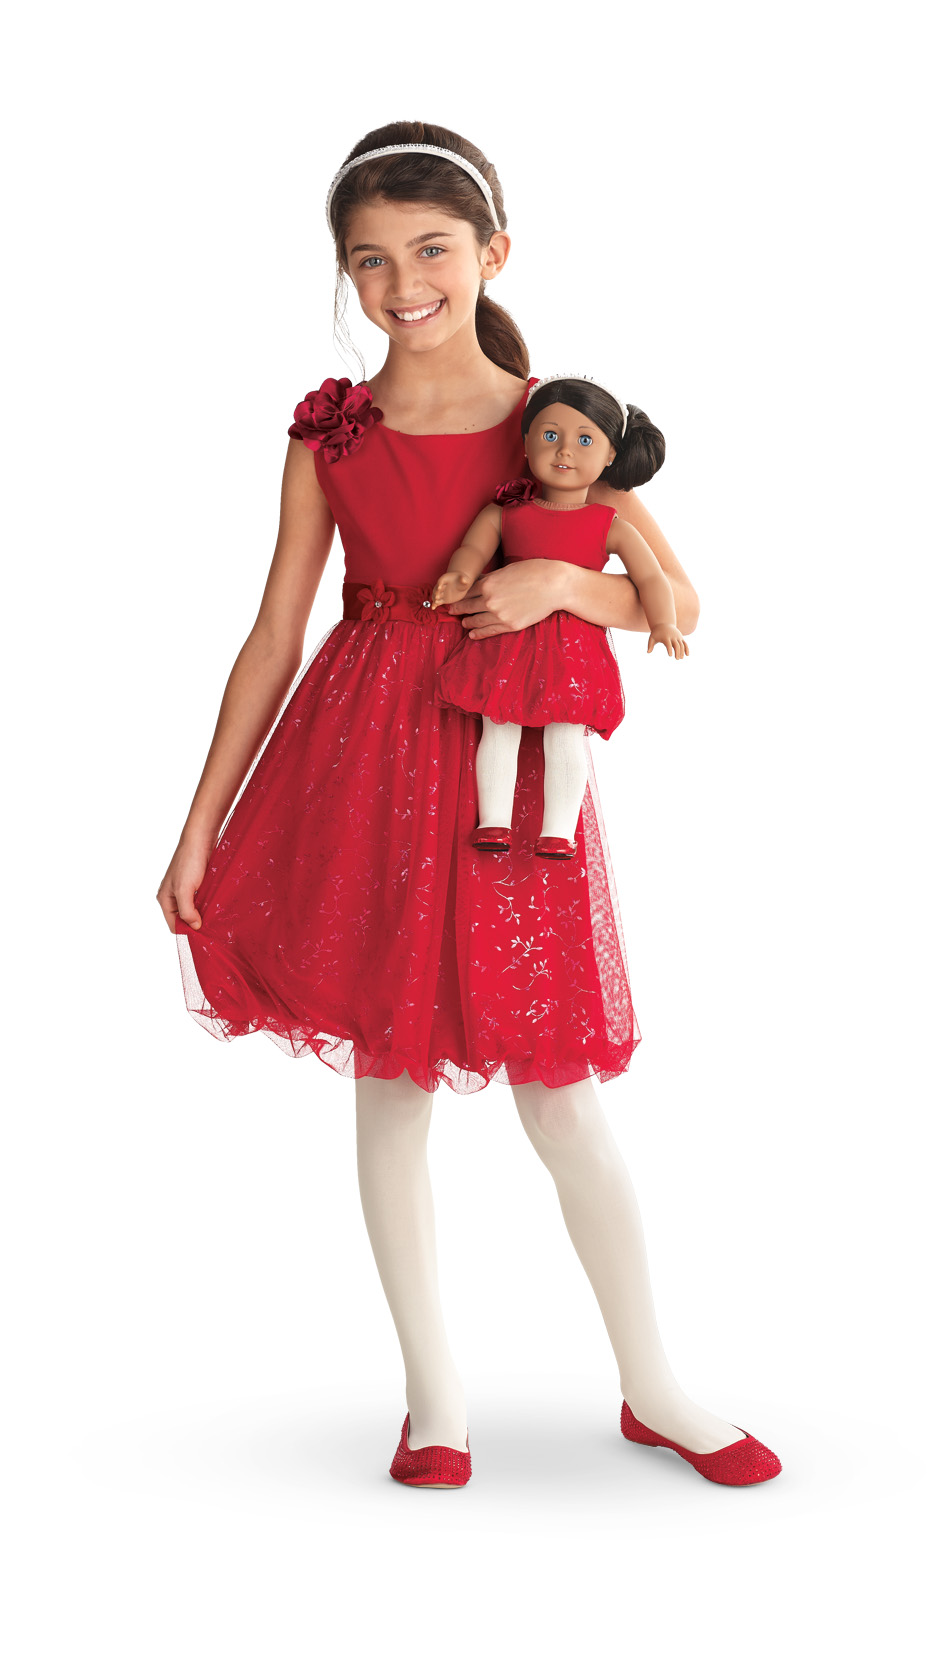 Apr 16,  · Bring her doll to life with our wholesale MATCHING OUTFIT SETS for girls! These beautiful high quality outfits are made just for her and her doll! Matching .